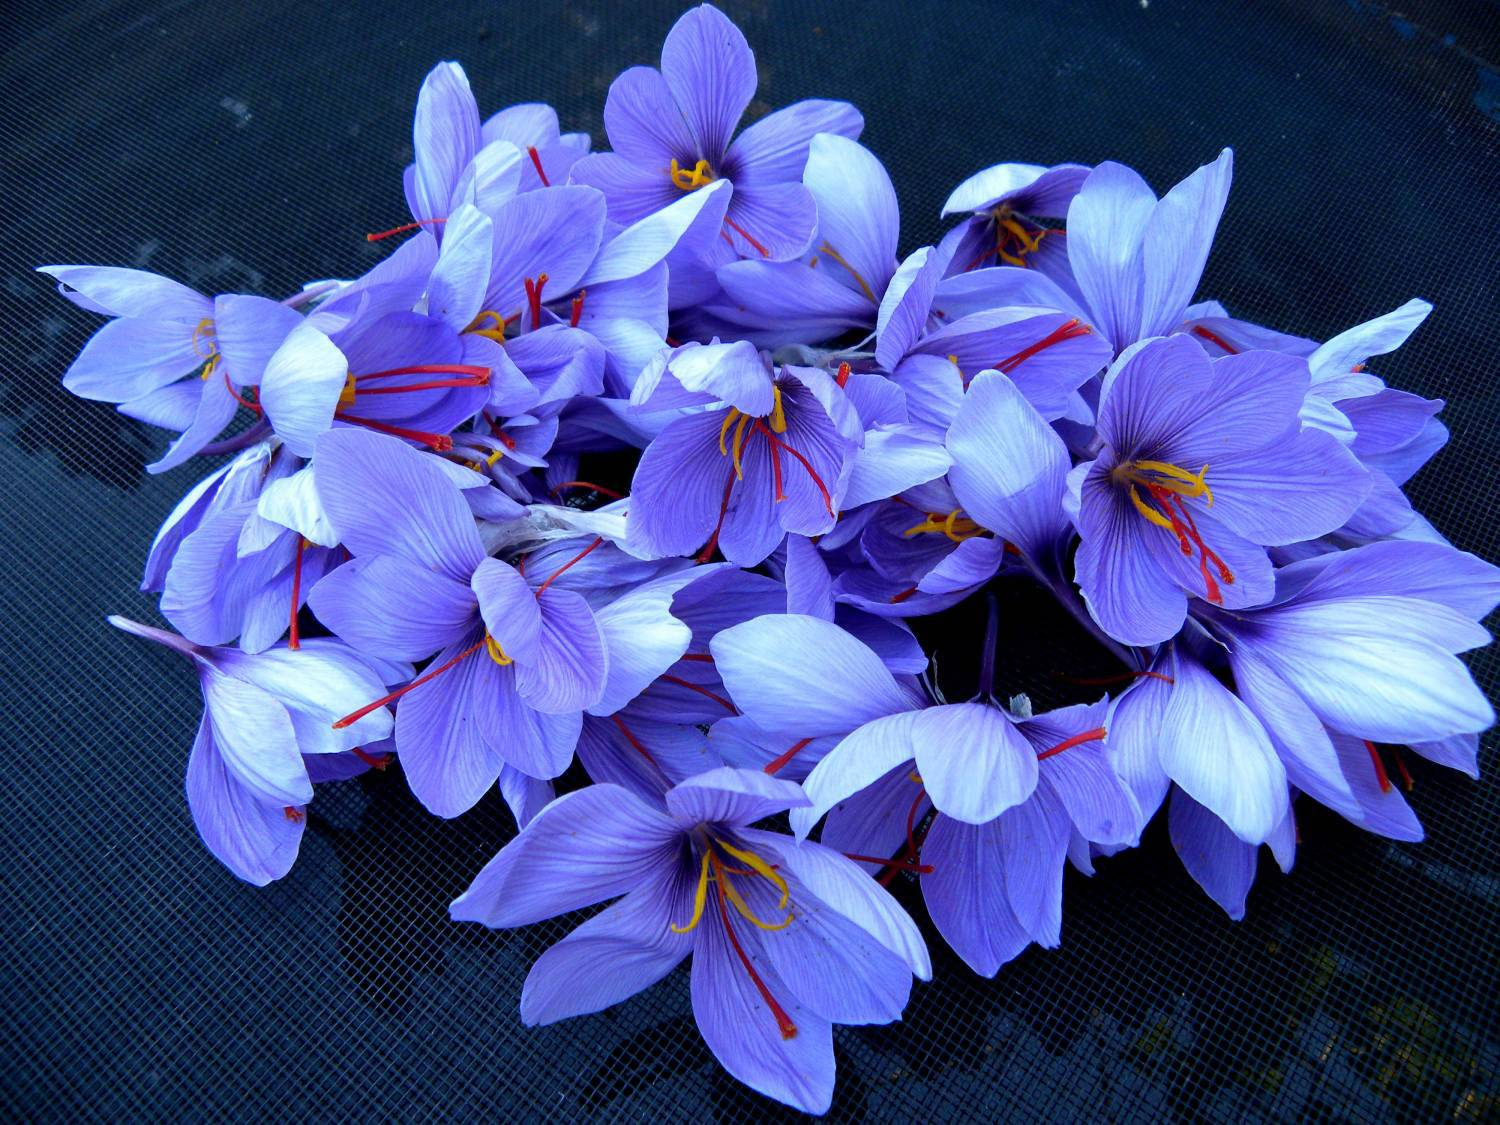 Saffron Crocus Photos